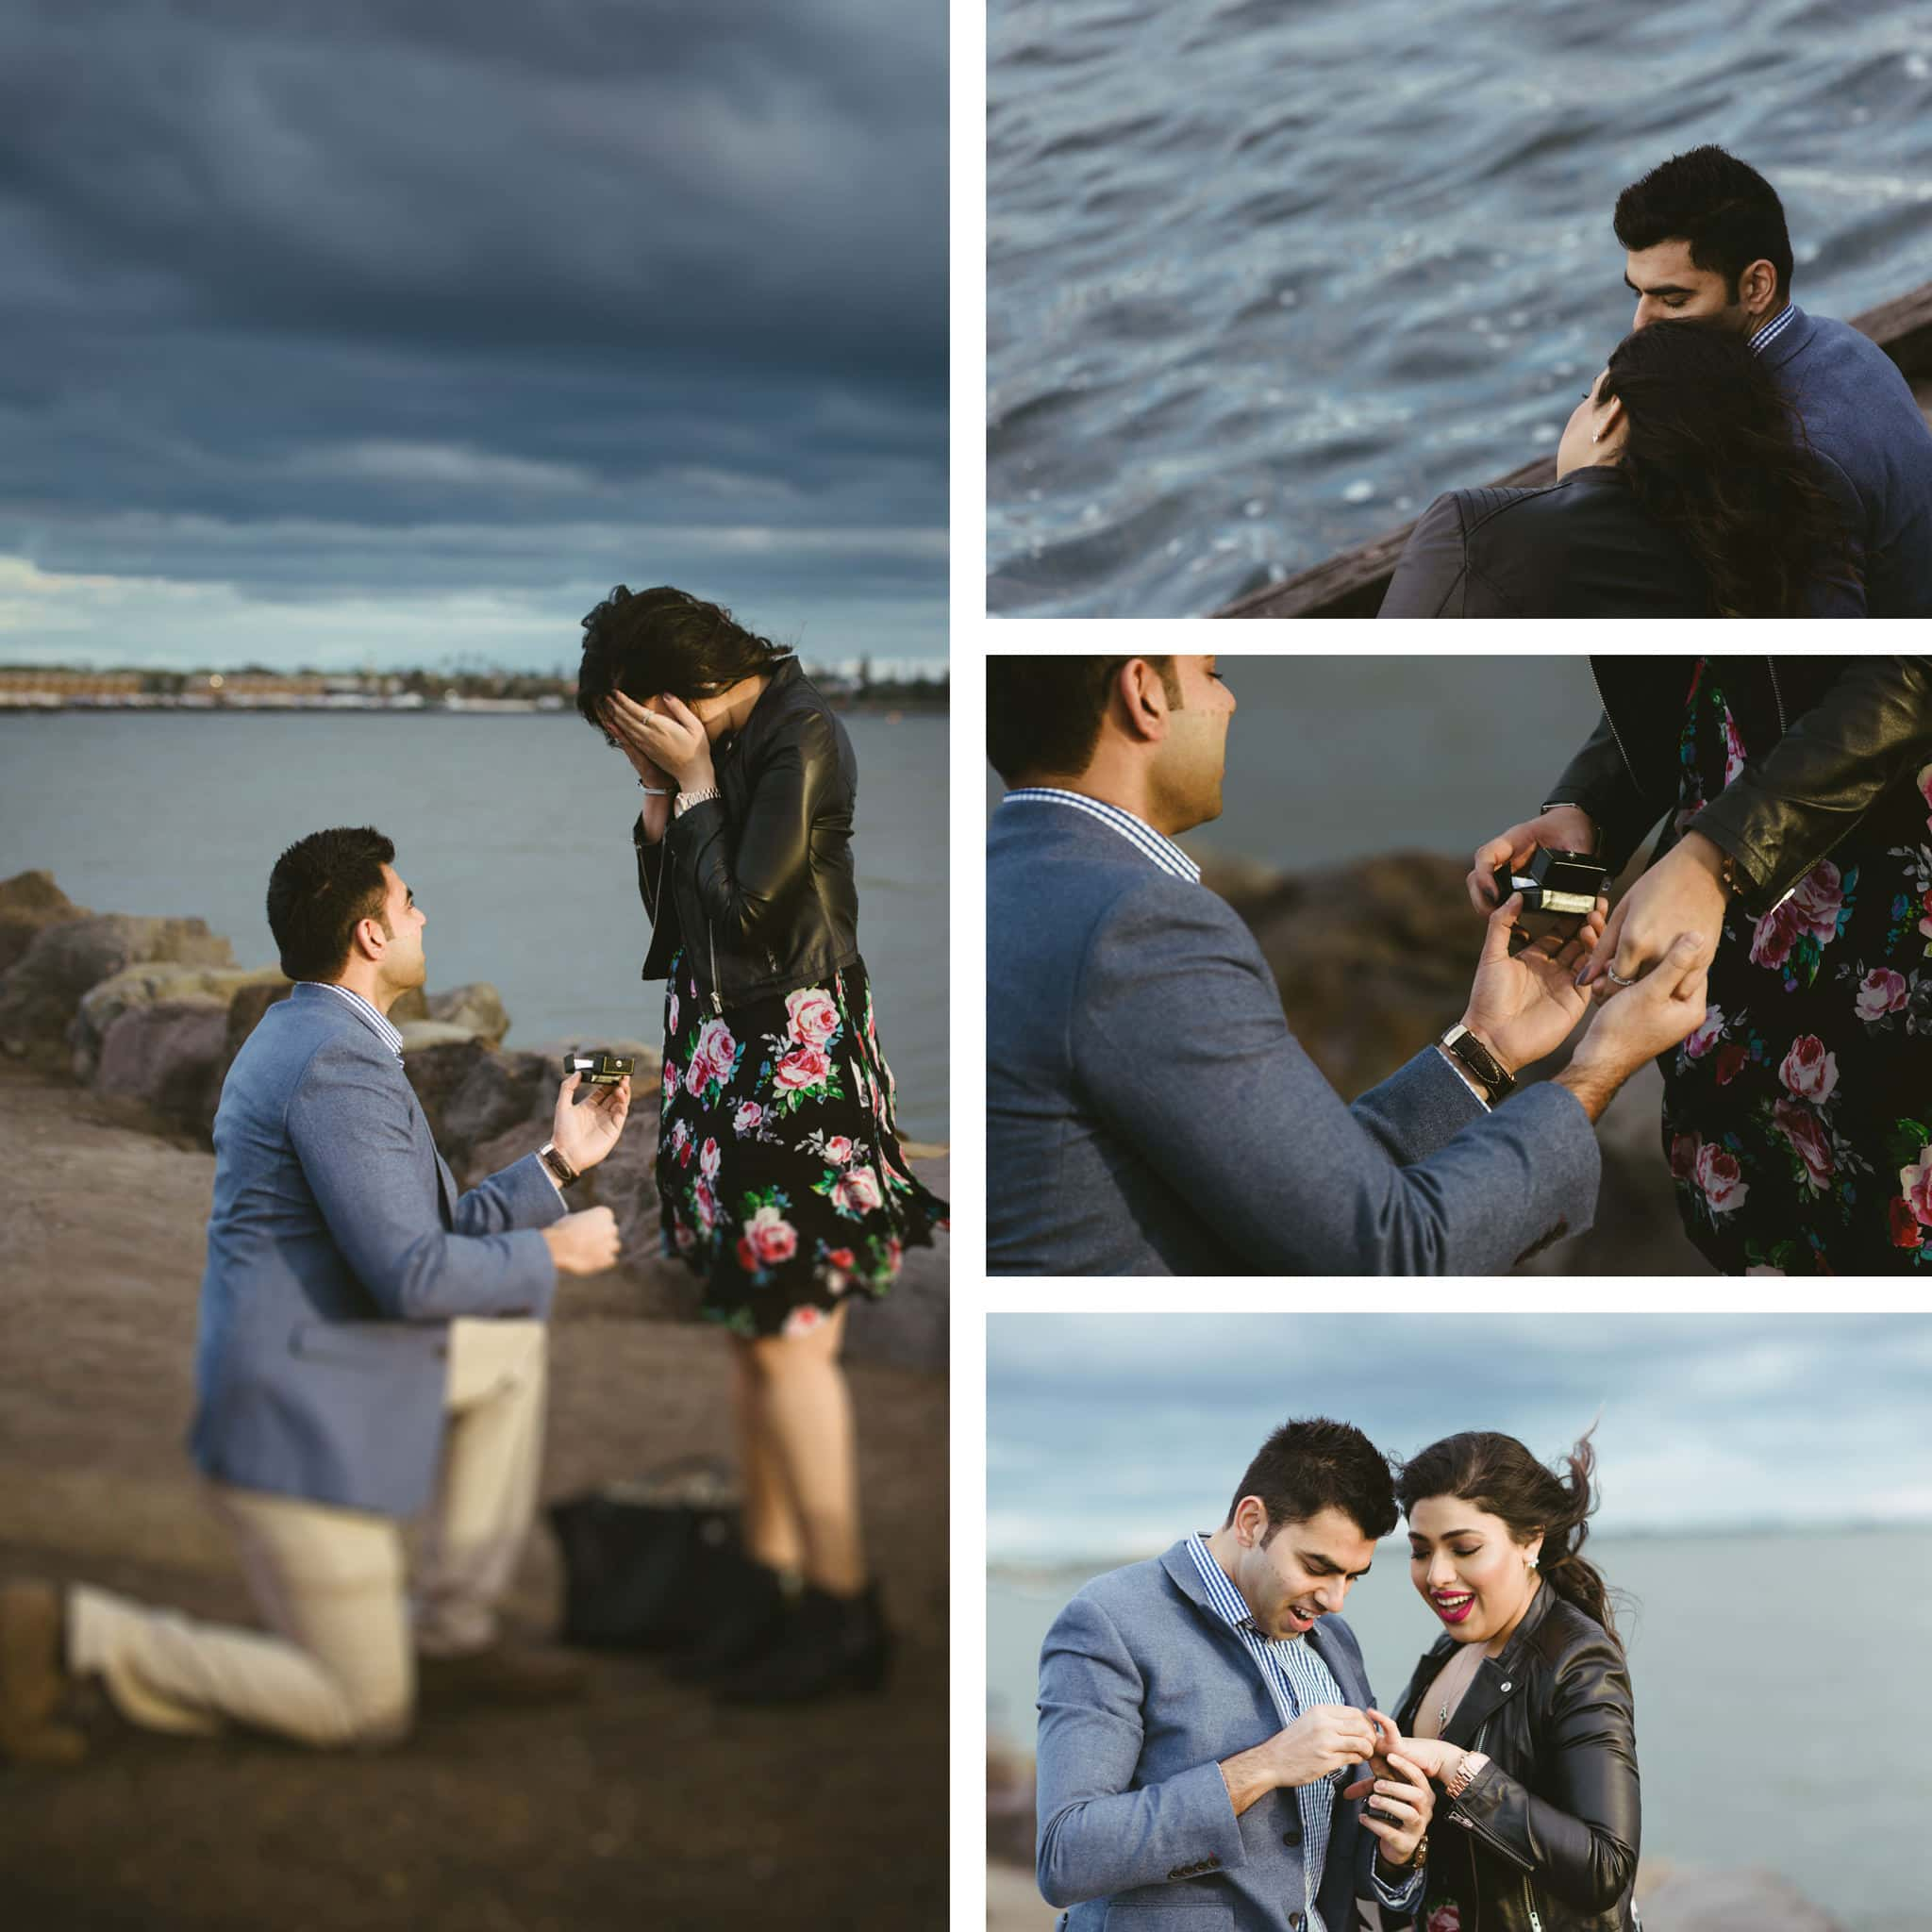 surprise engagement captured on camera - real photography in melbourne